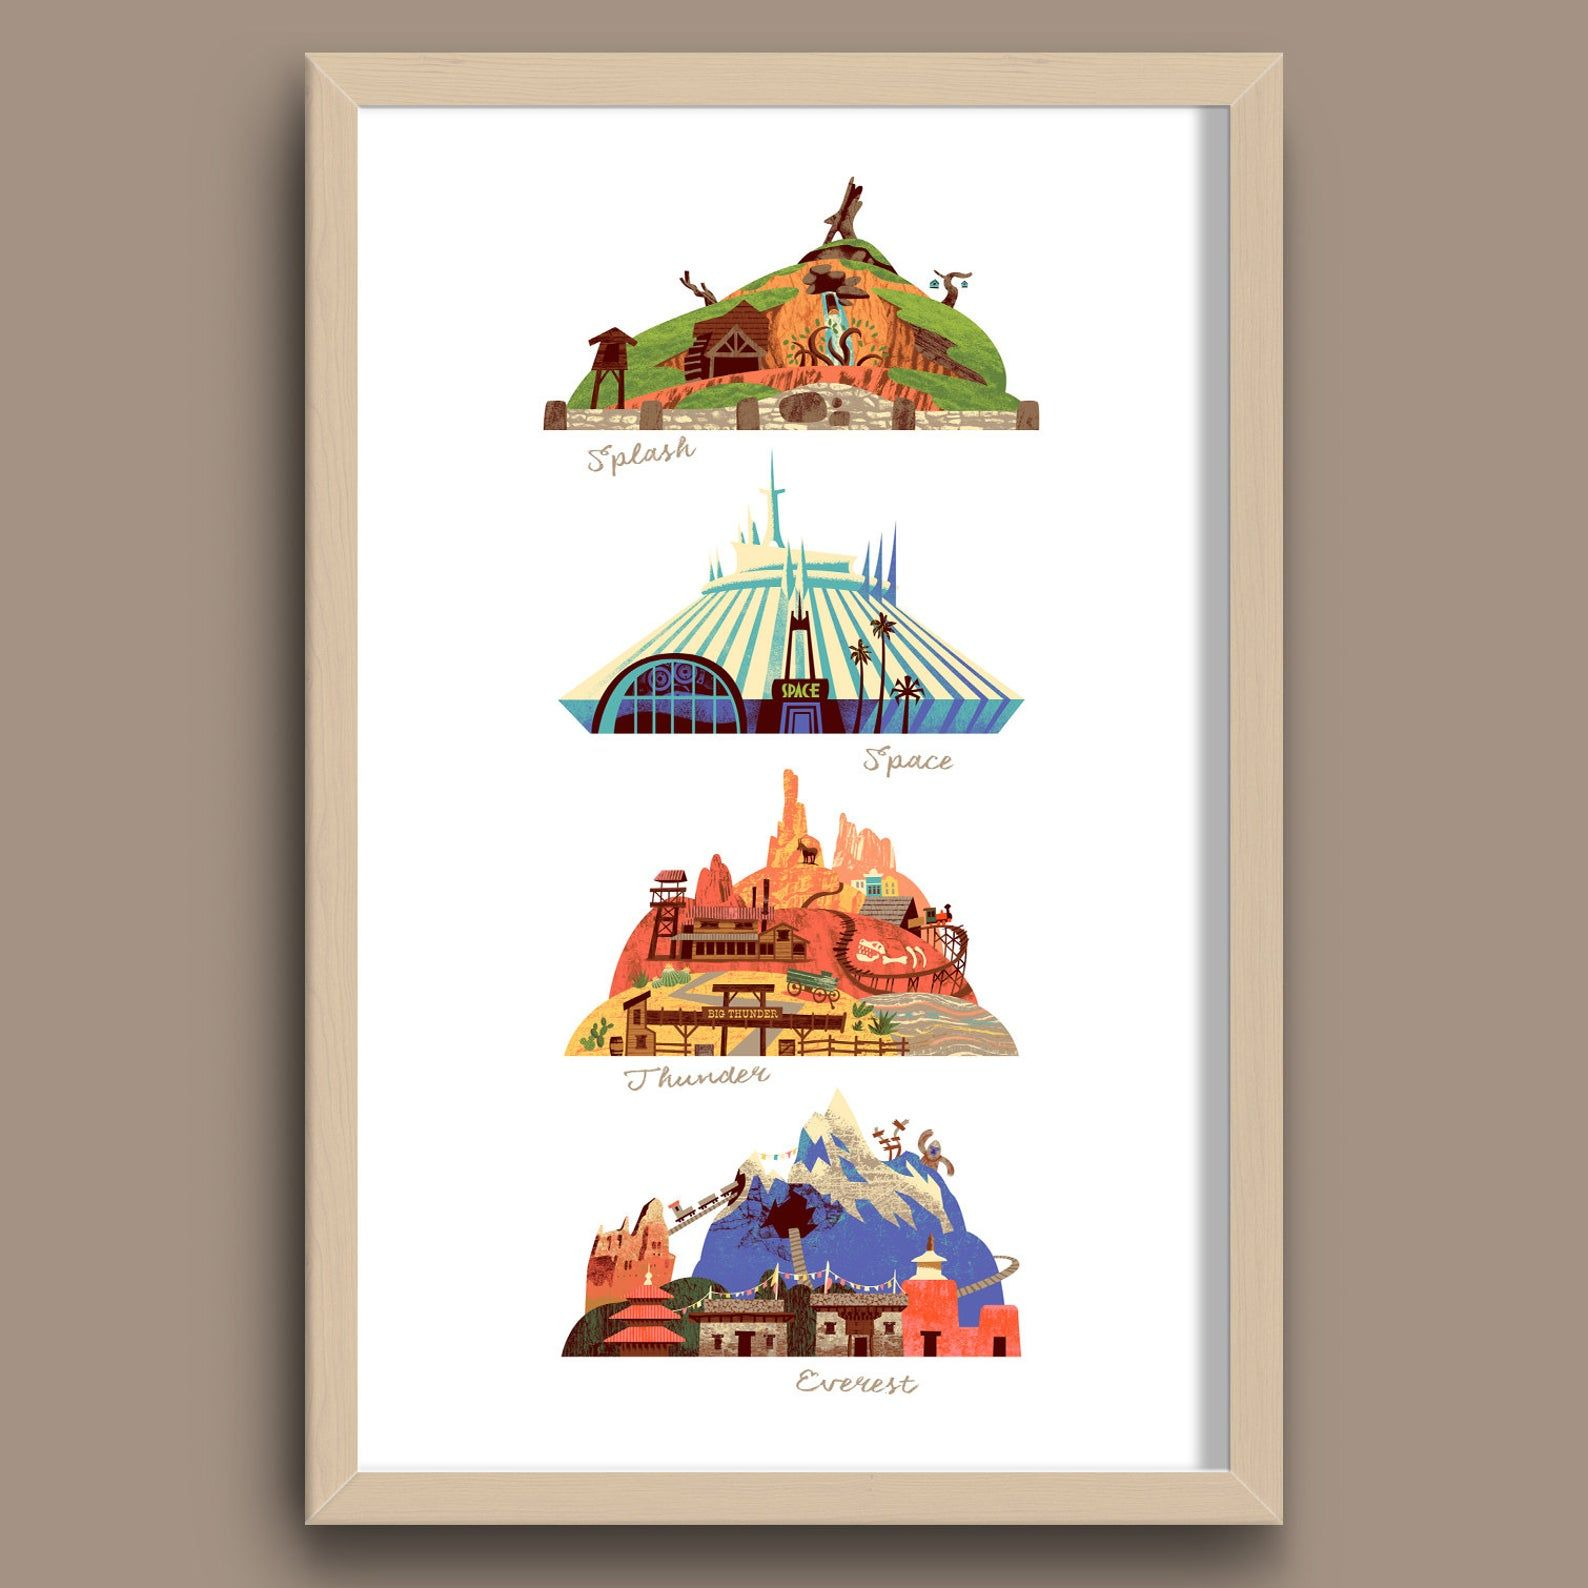 The Disney Mountains Print, Walt Disney World, Spl